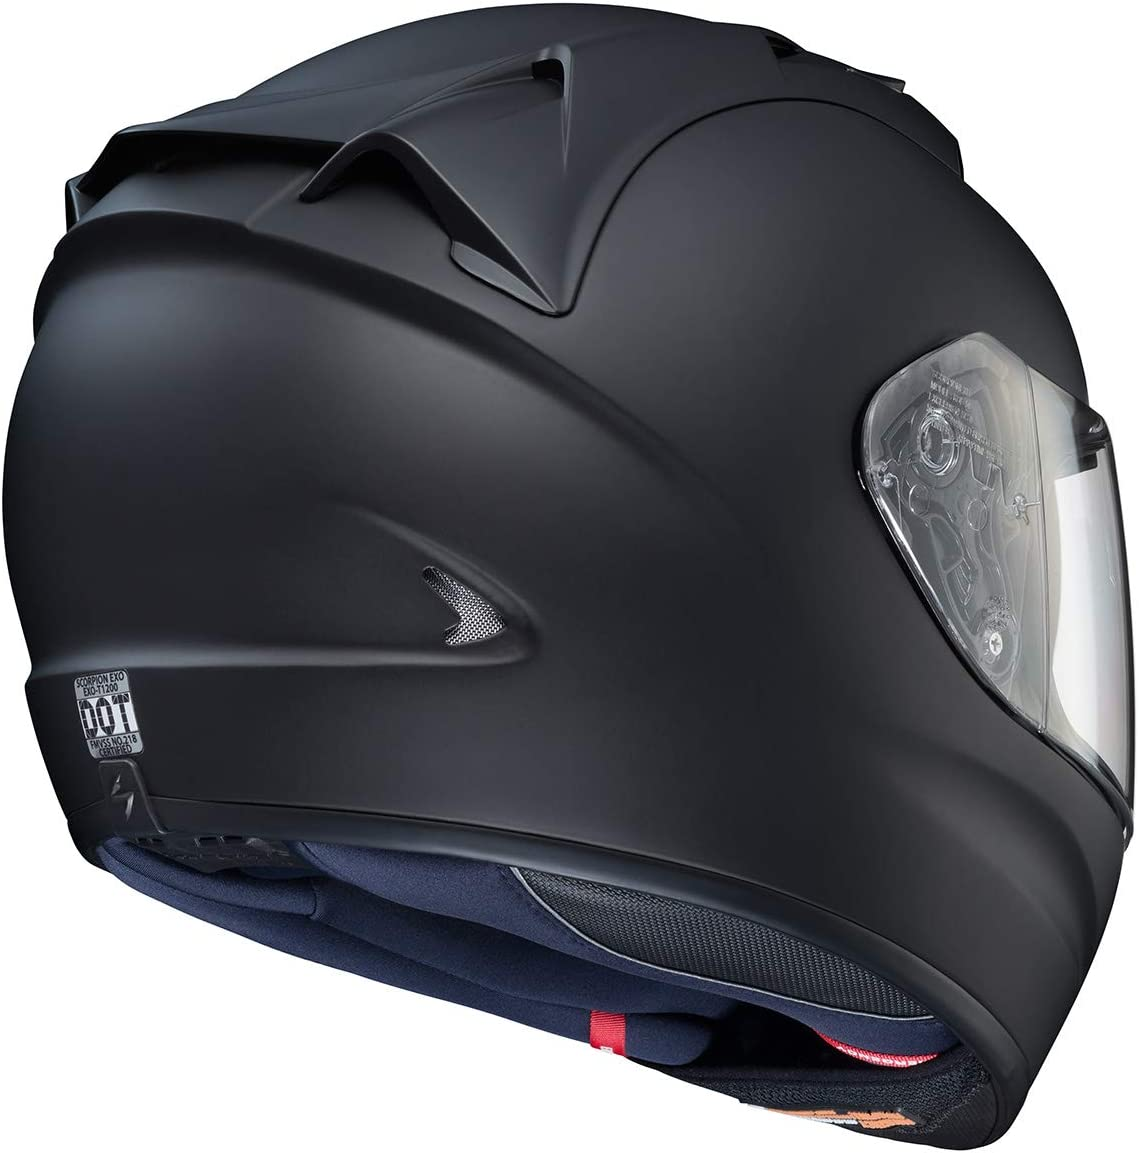 Scorpion EXO-T1200 Solid Street Motorcycle Helmet Black, Large